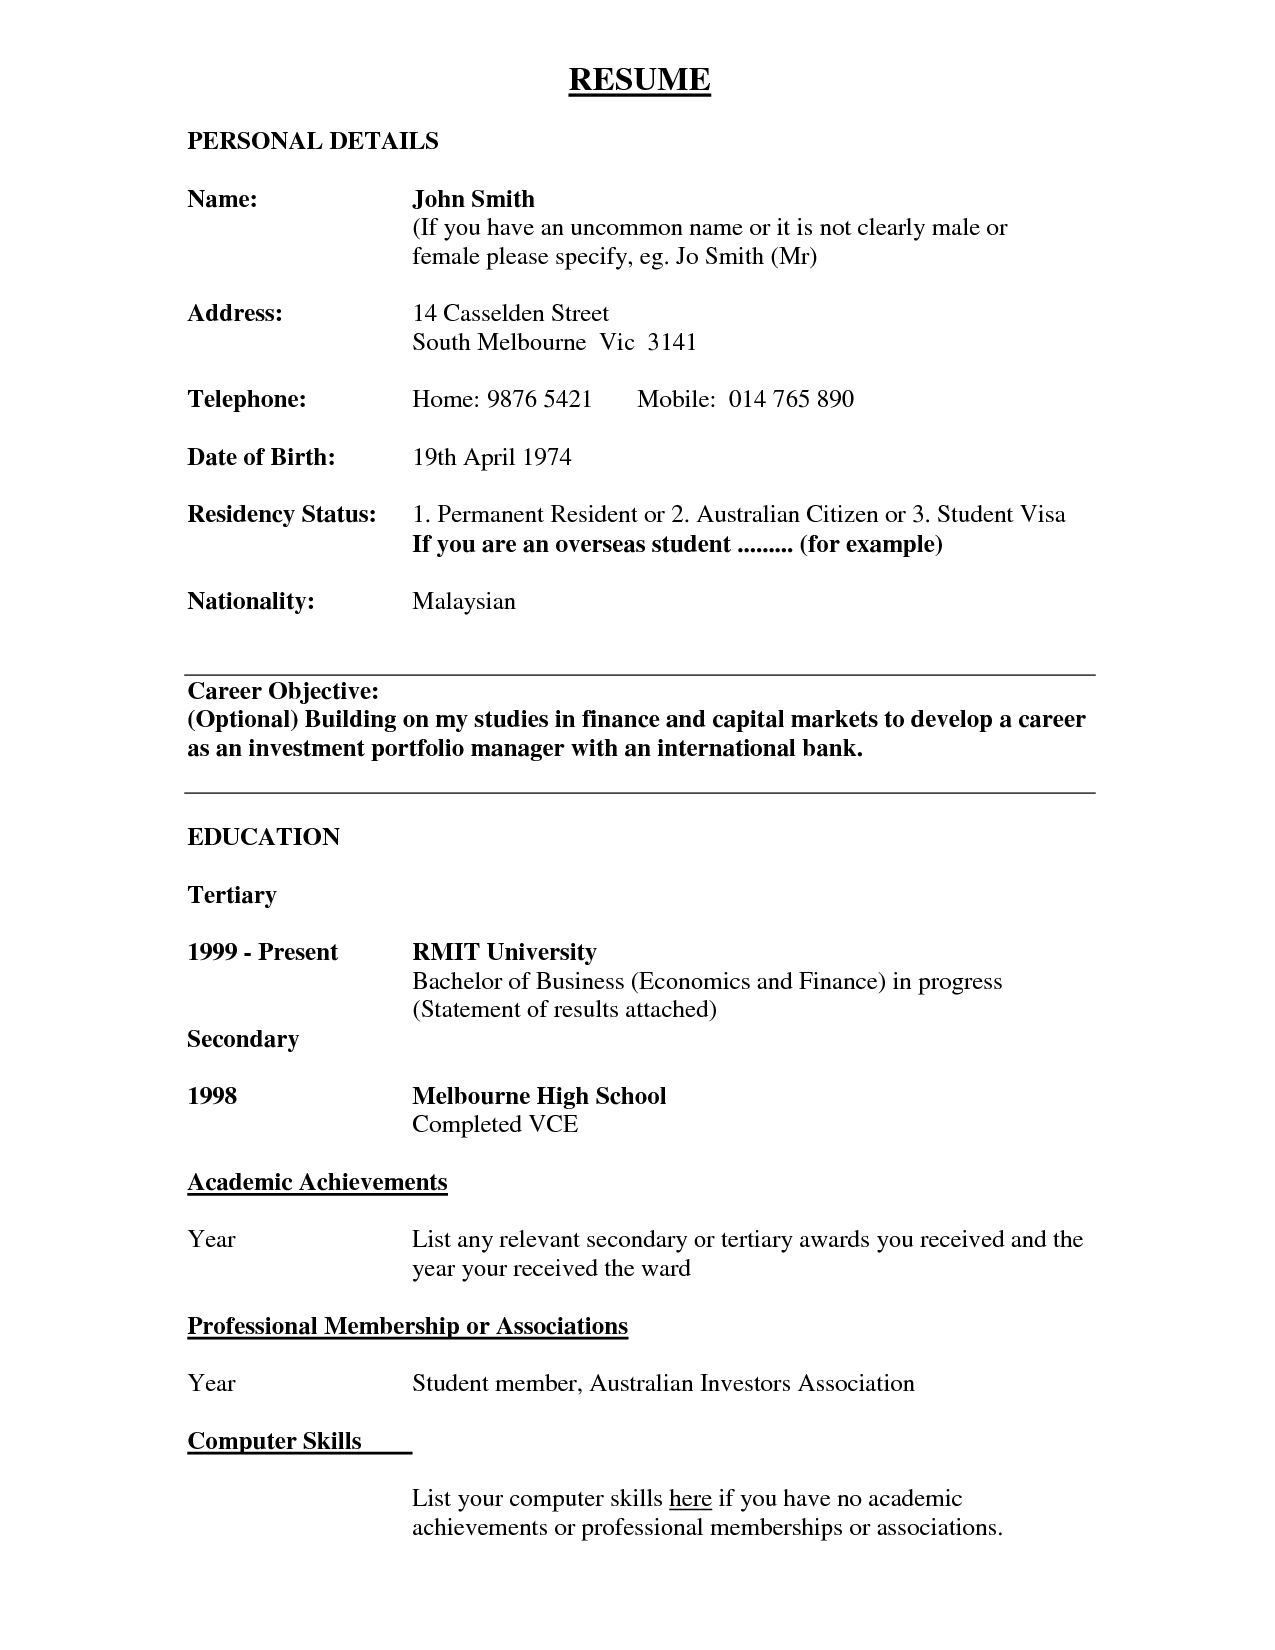 Sample Resume For Bank Teller With No Experience - http://www ...